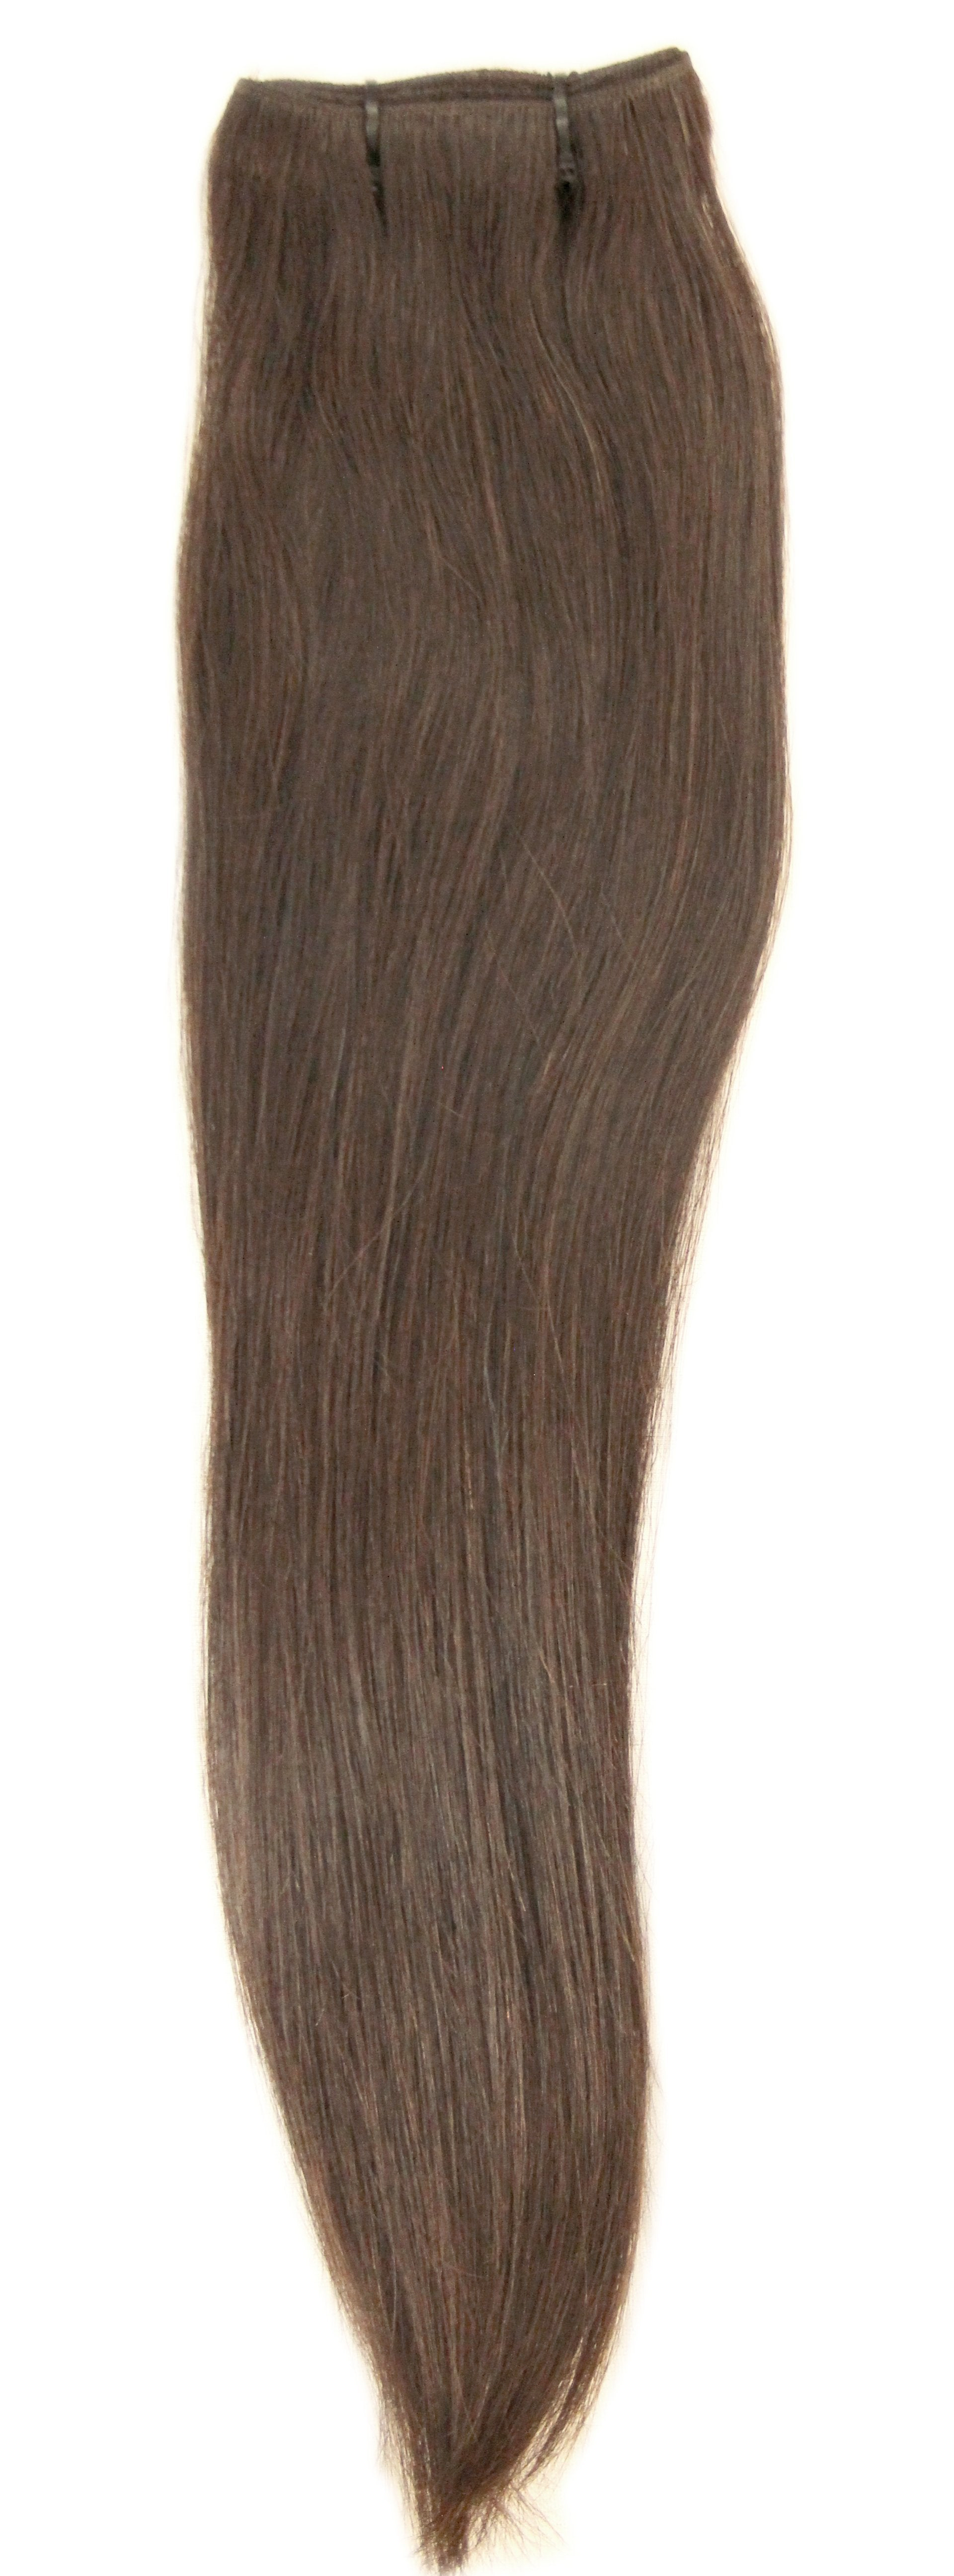 "16"" Length East-European Colored & Blond Weft Hair Extensions"